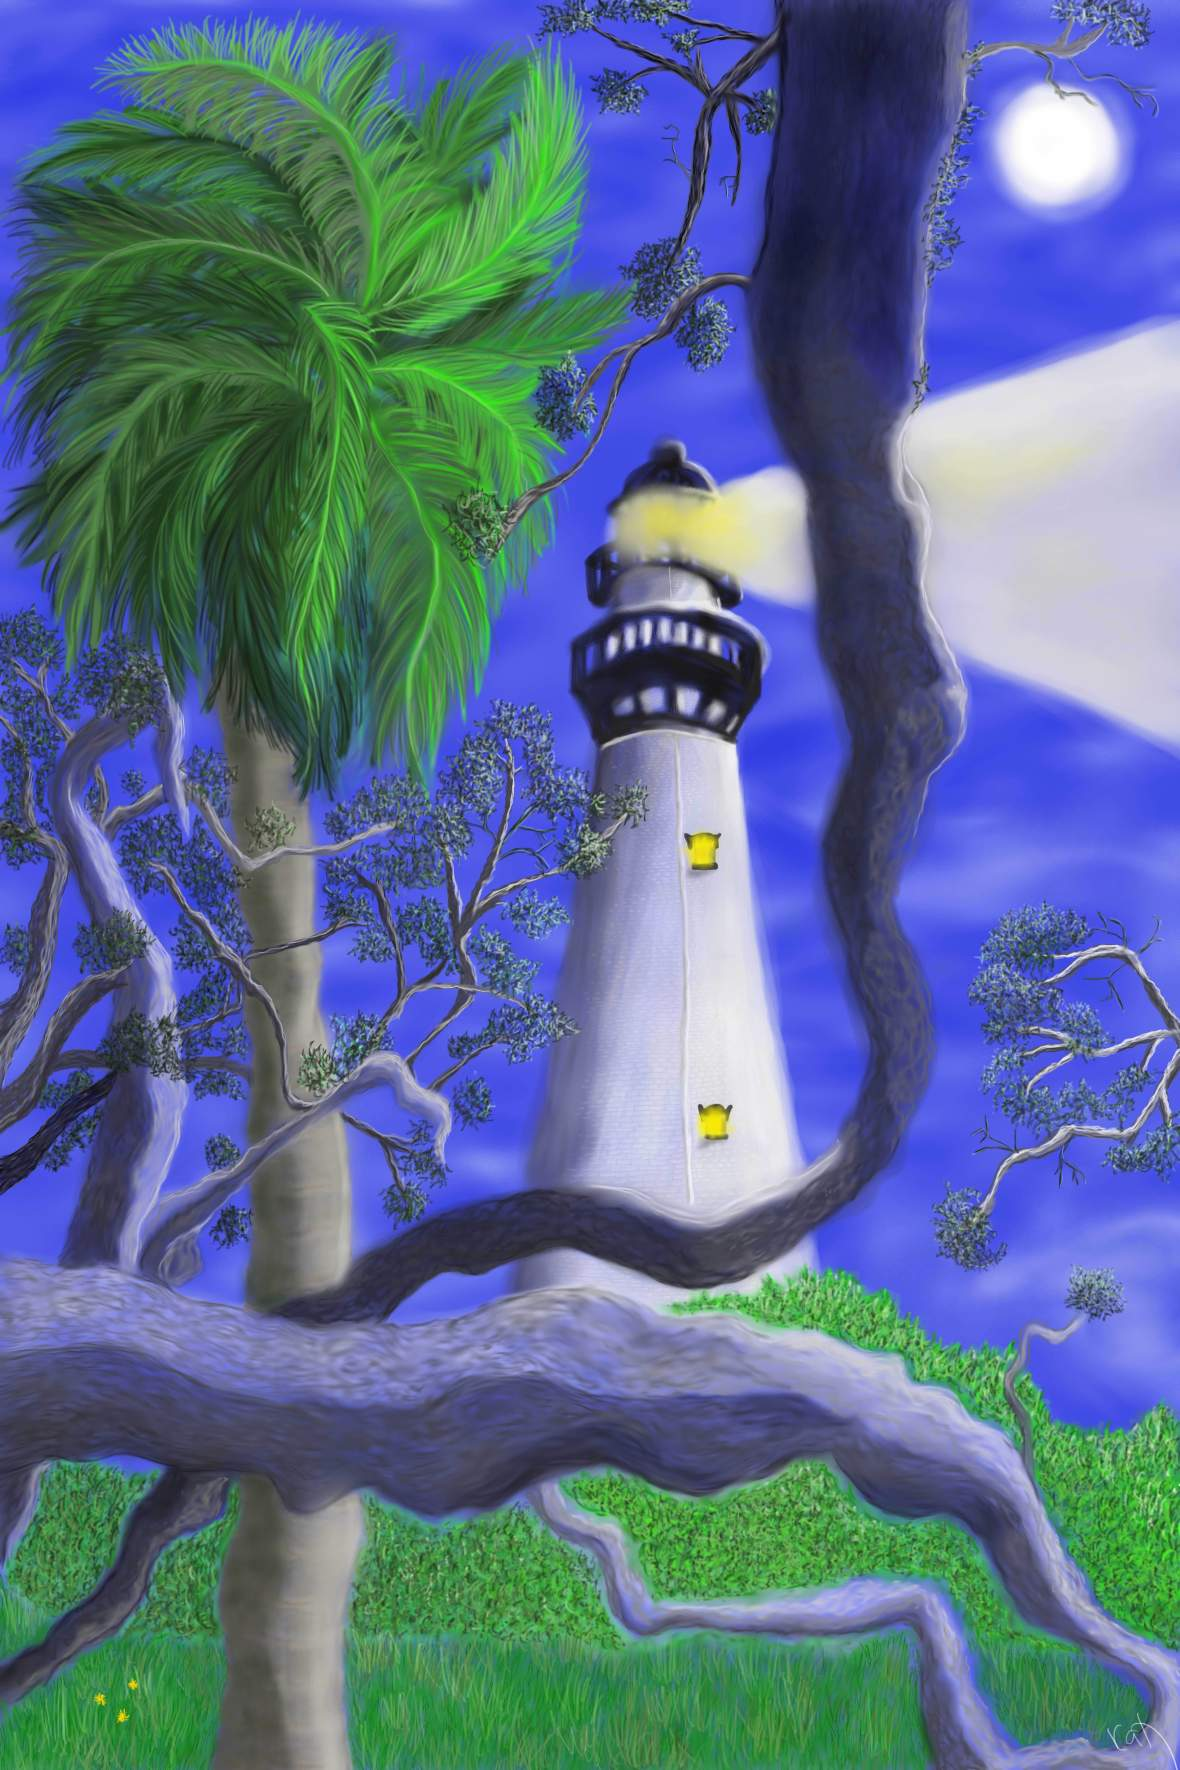 rr true lighthouse pic.jpg